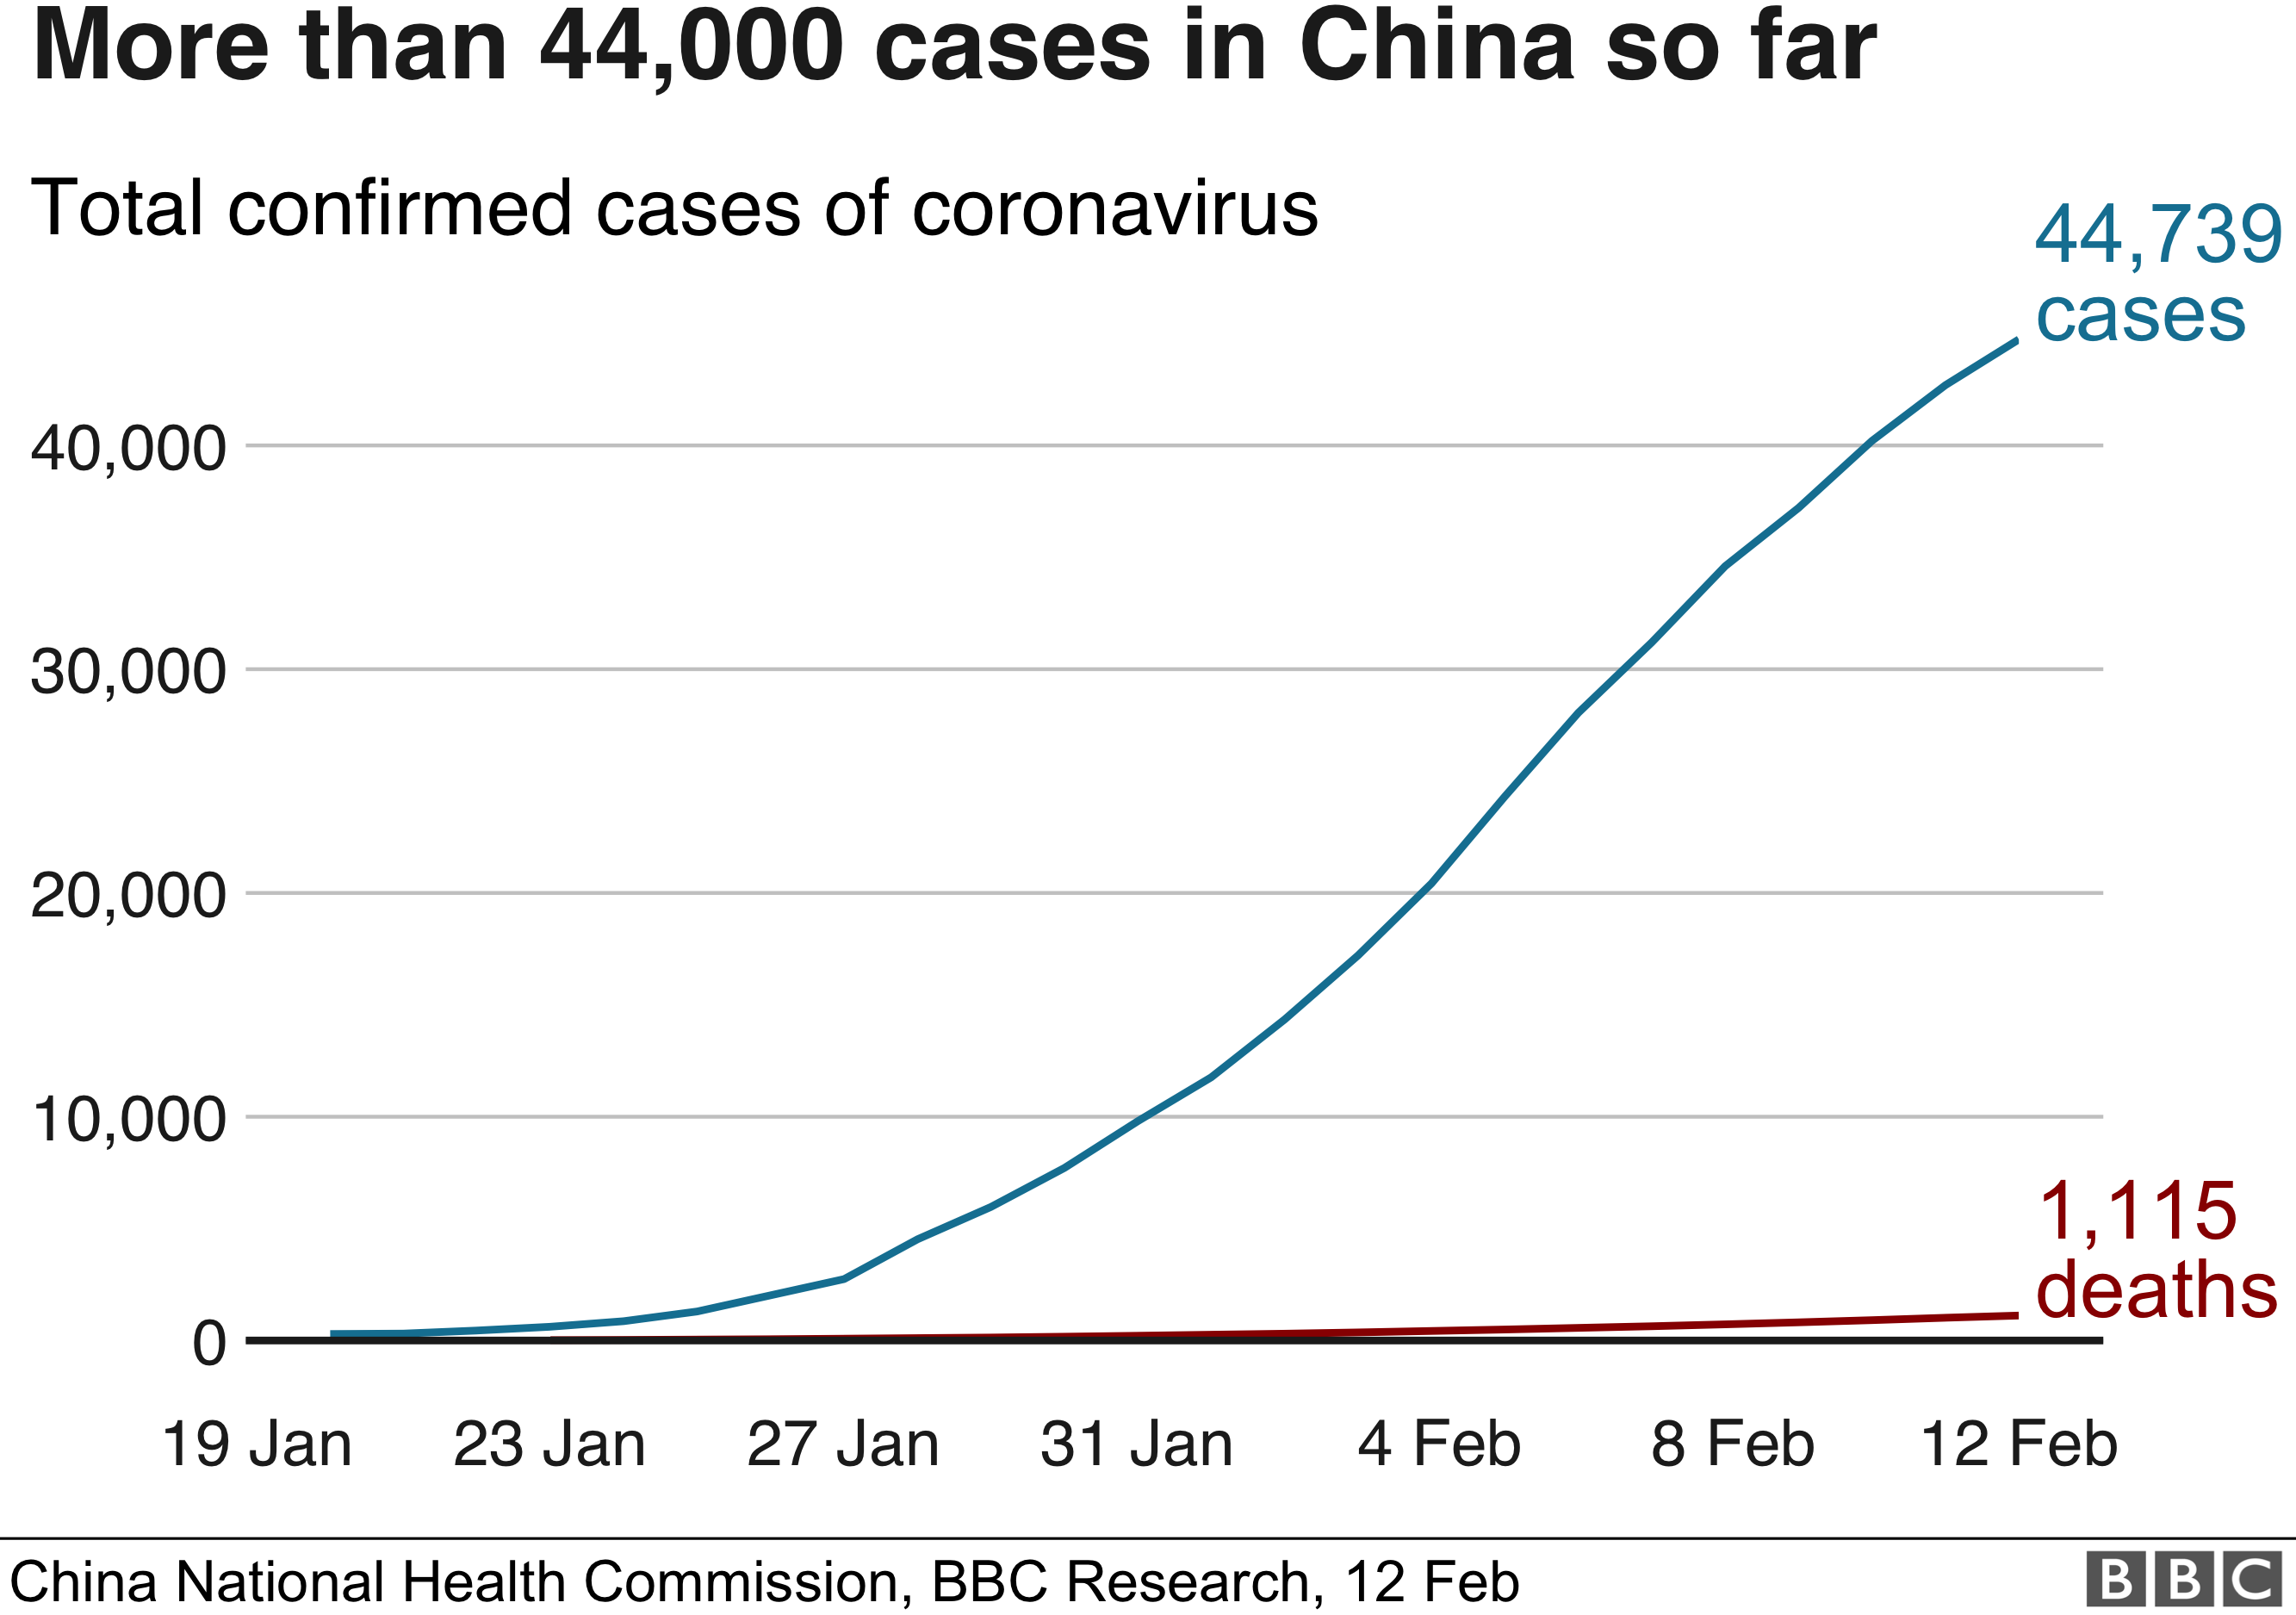 Graph showing cases and deaths from Covid-19 in China